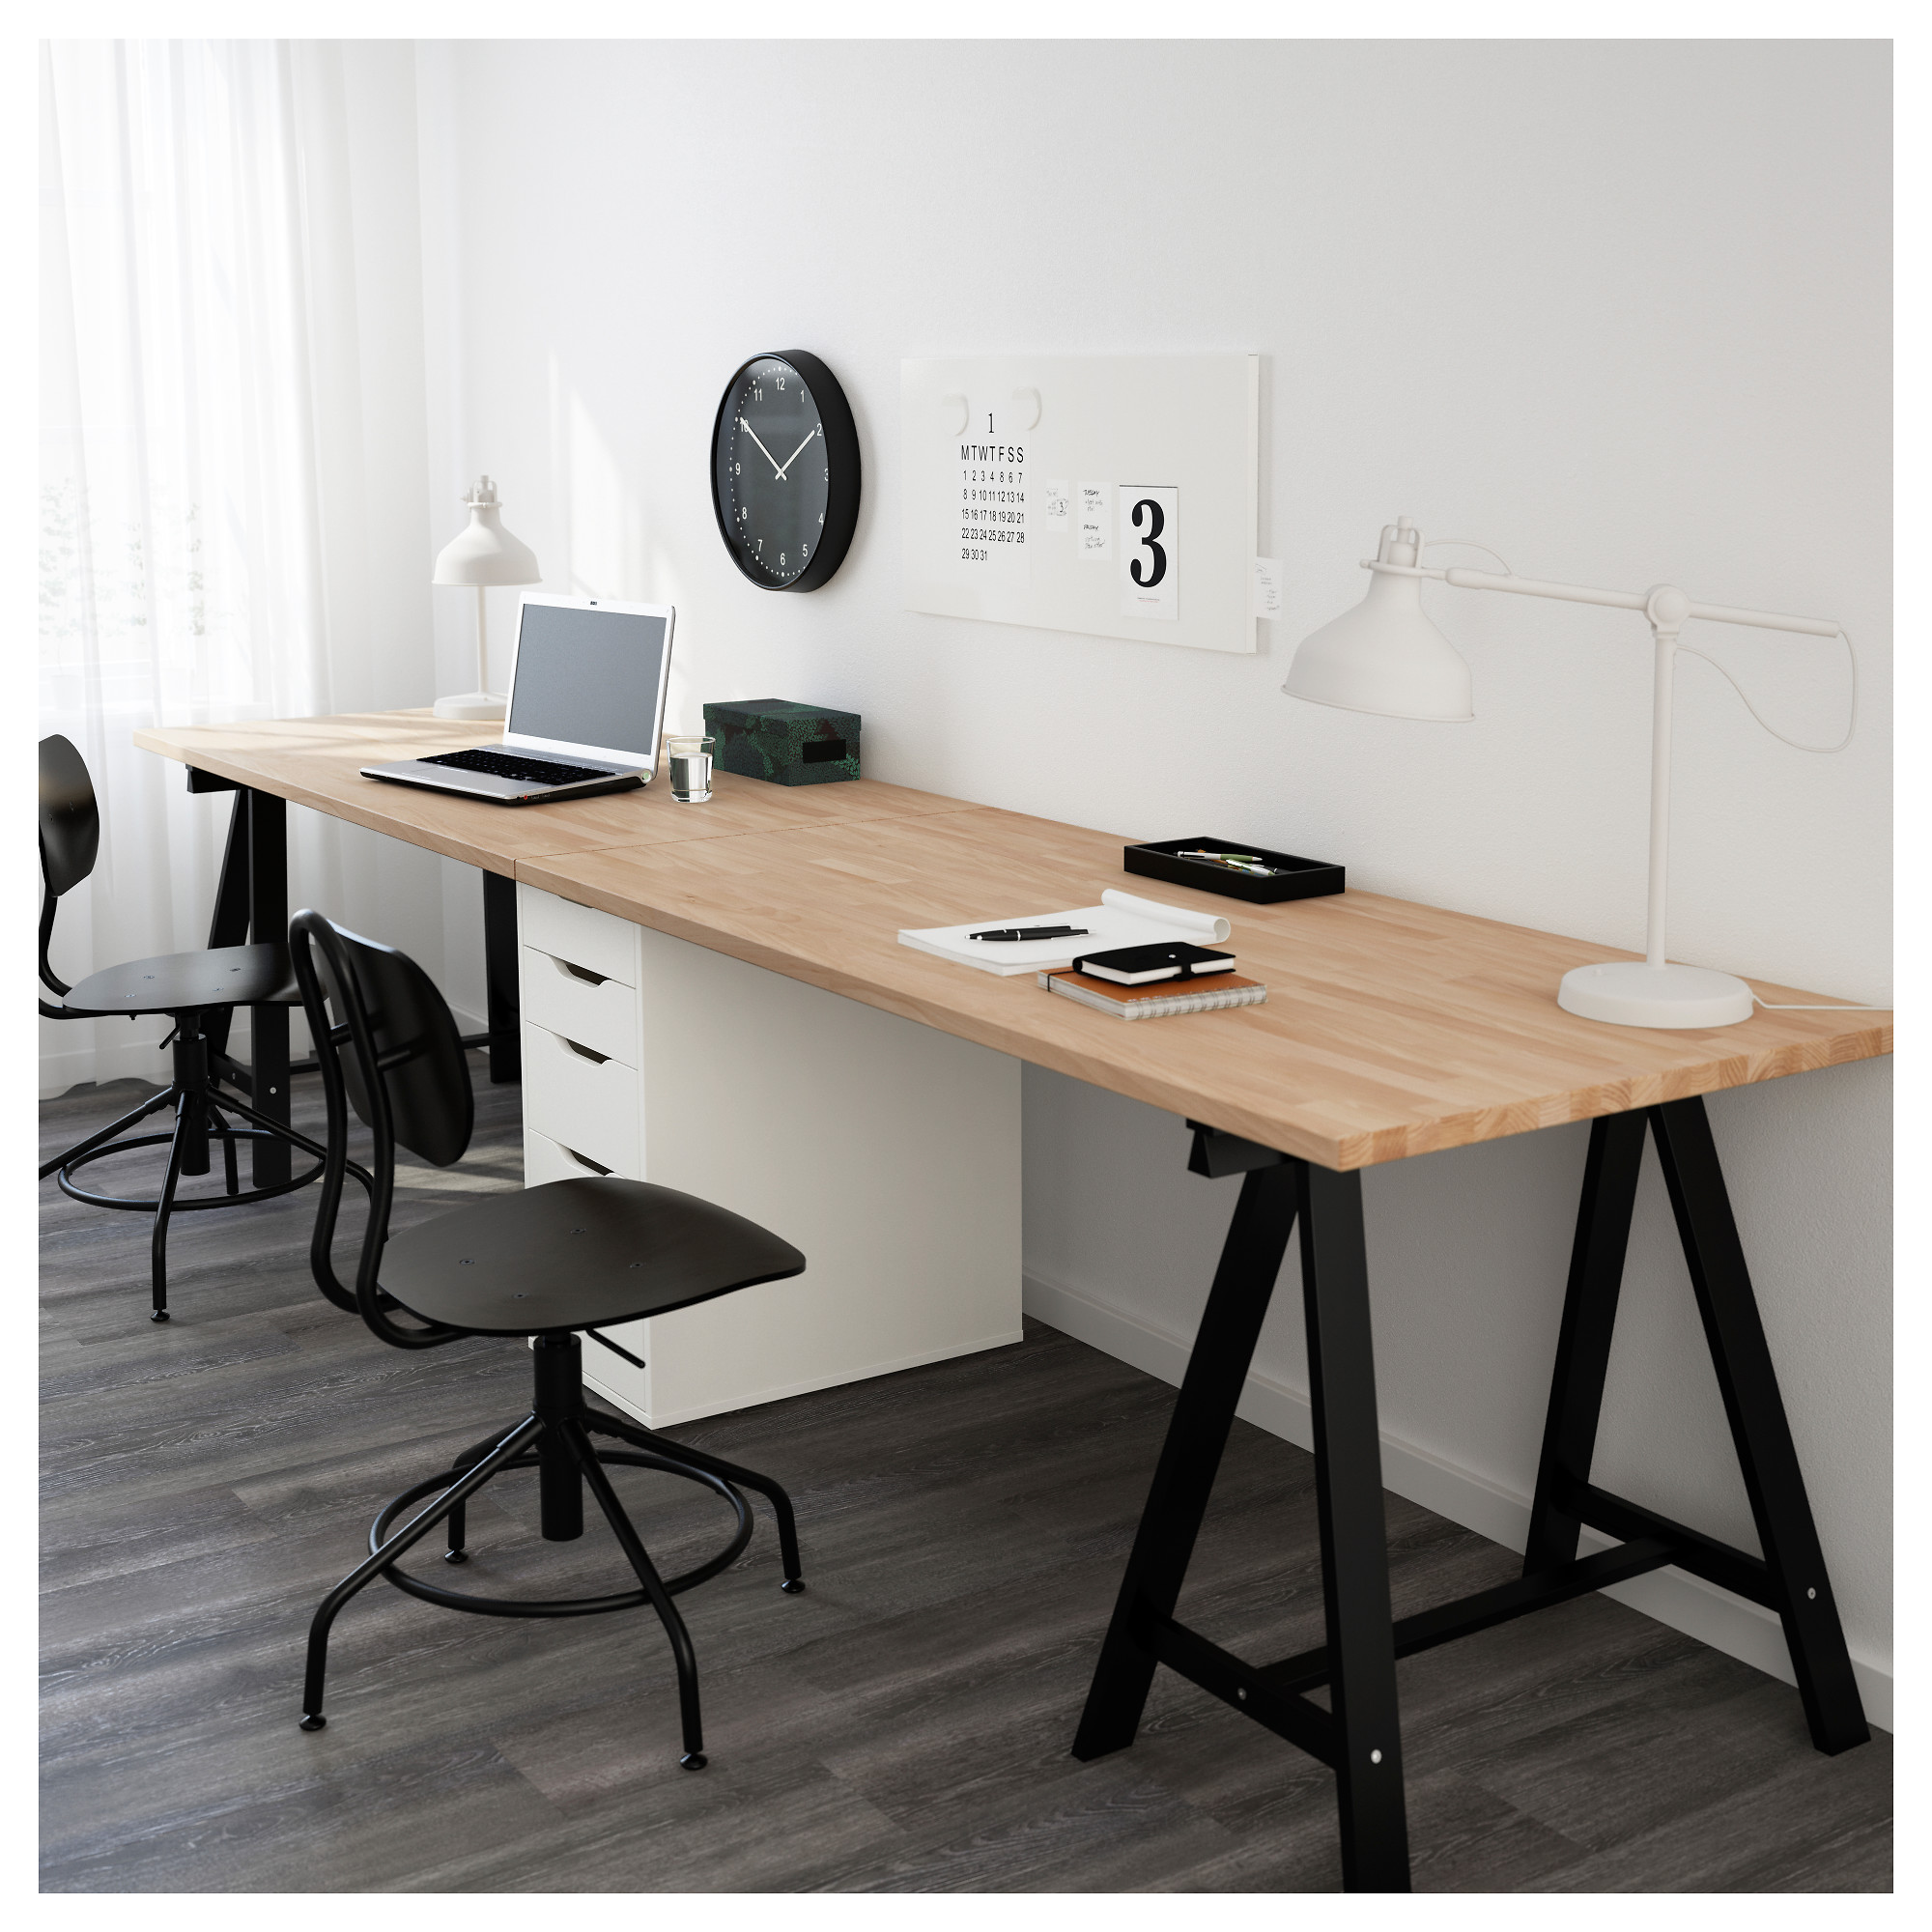 bureau traiteau id e un bureau sur tr teaux 12 inspirations et une puis je associer un bureau. Black Bedroom Furniture Sets. Home Design Ideas